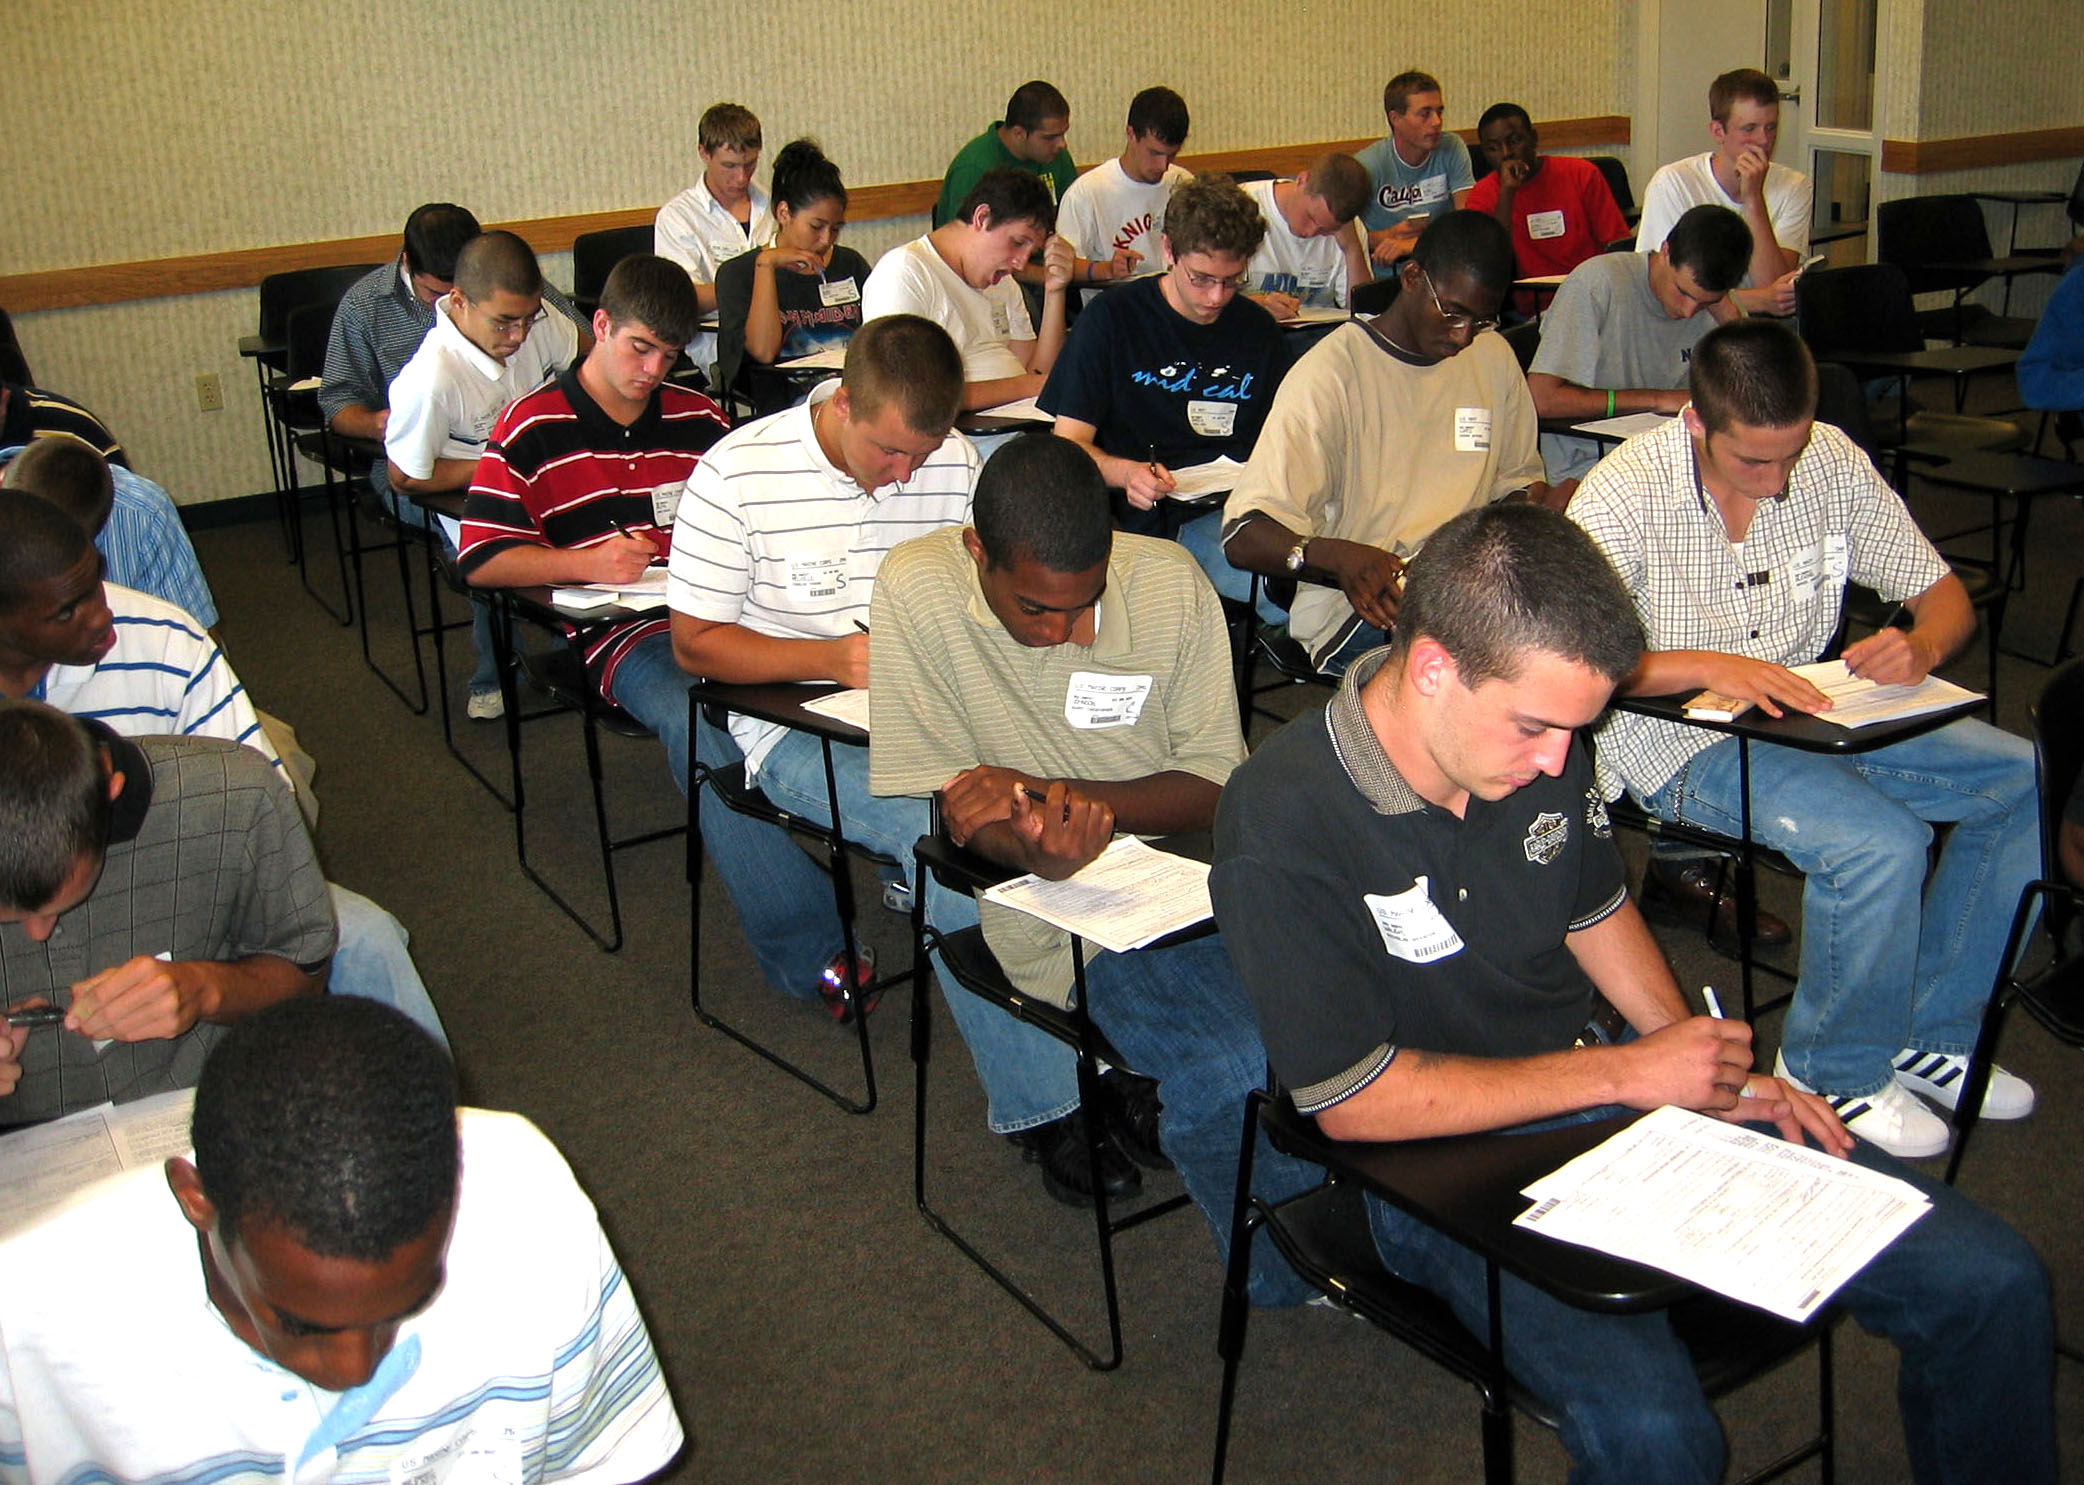 New recruits review their military contracts one last time before